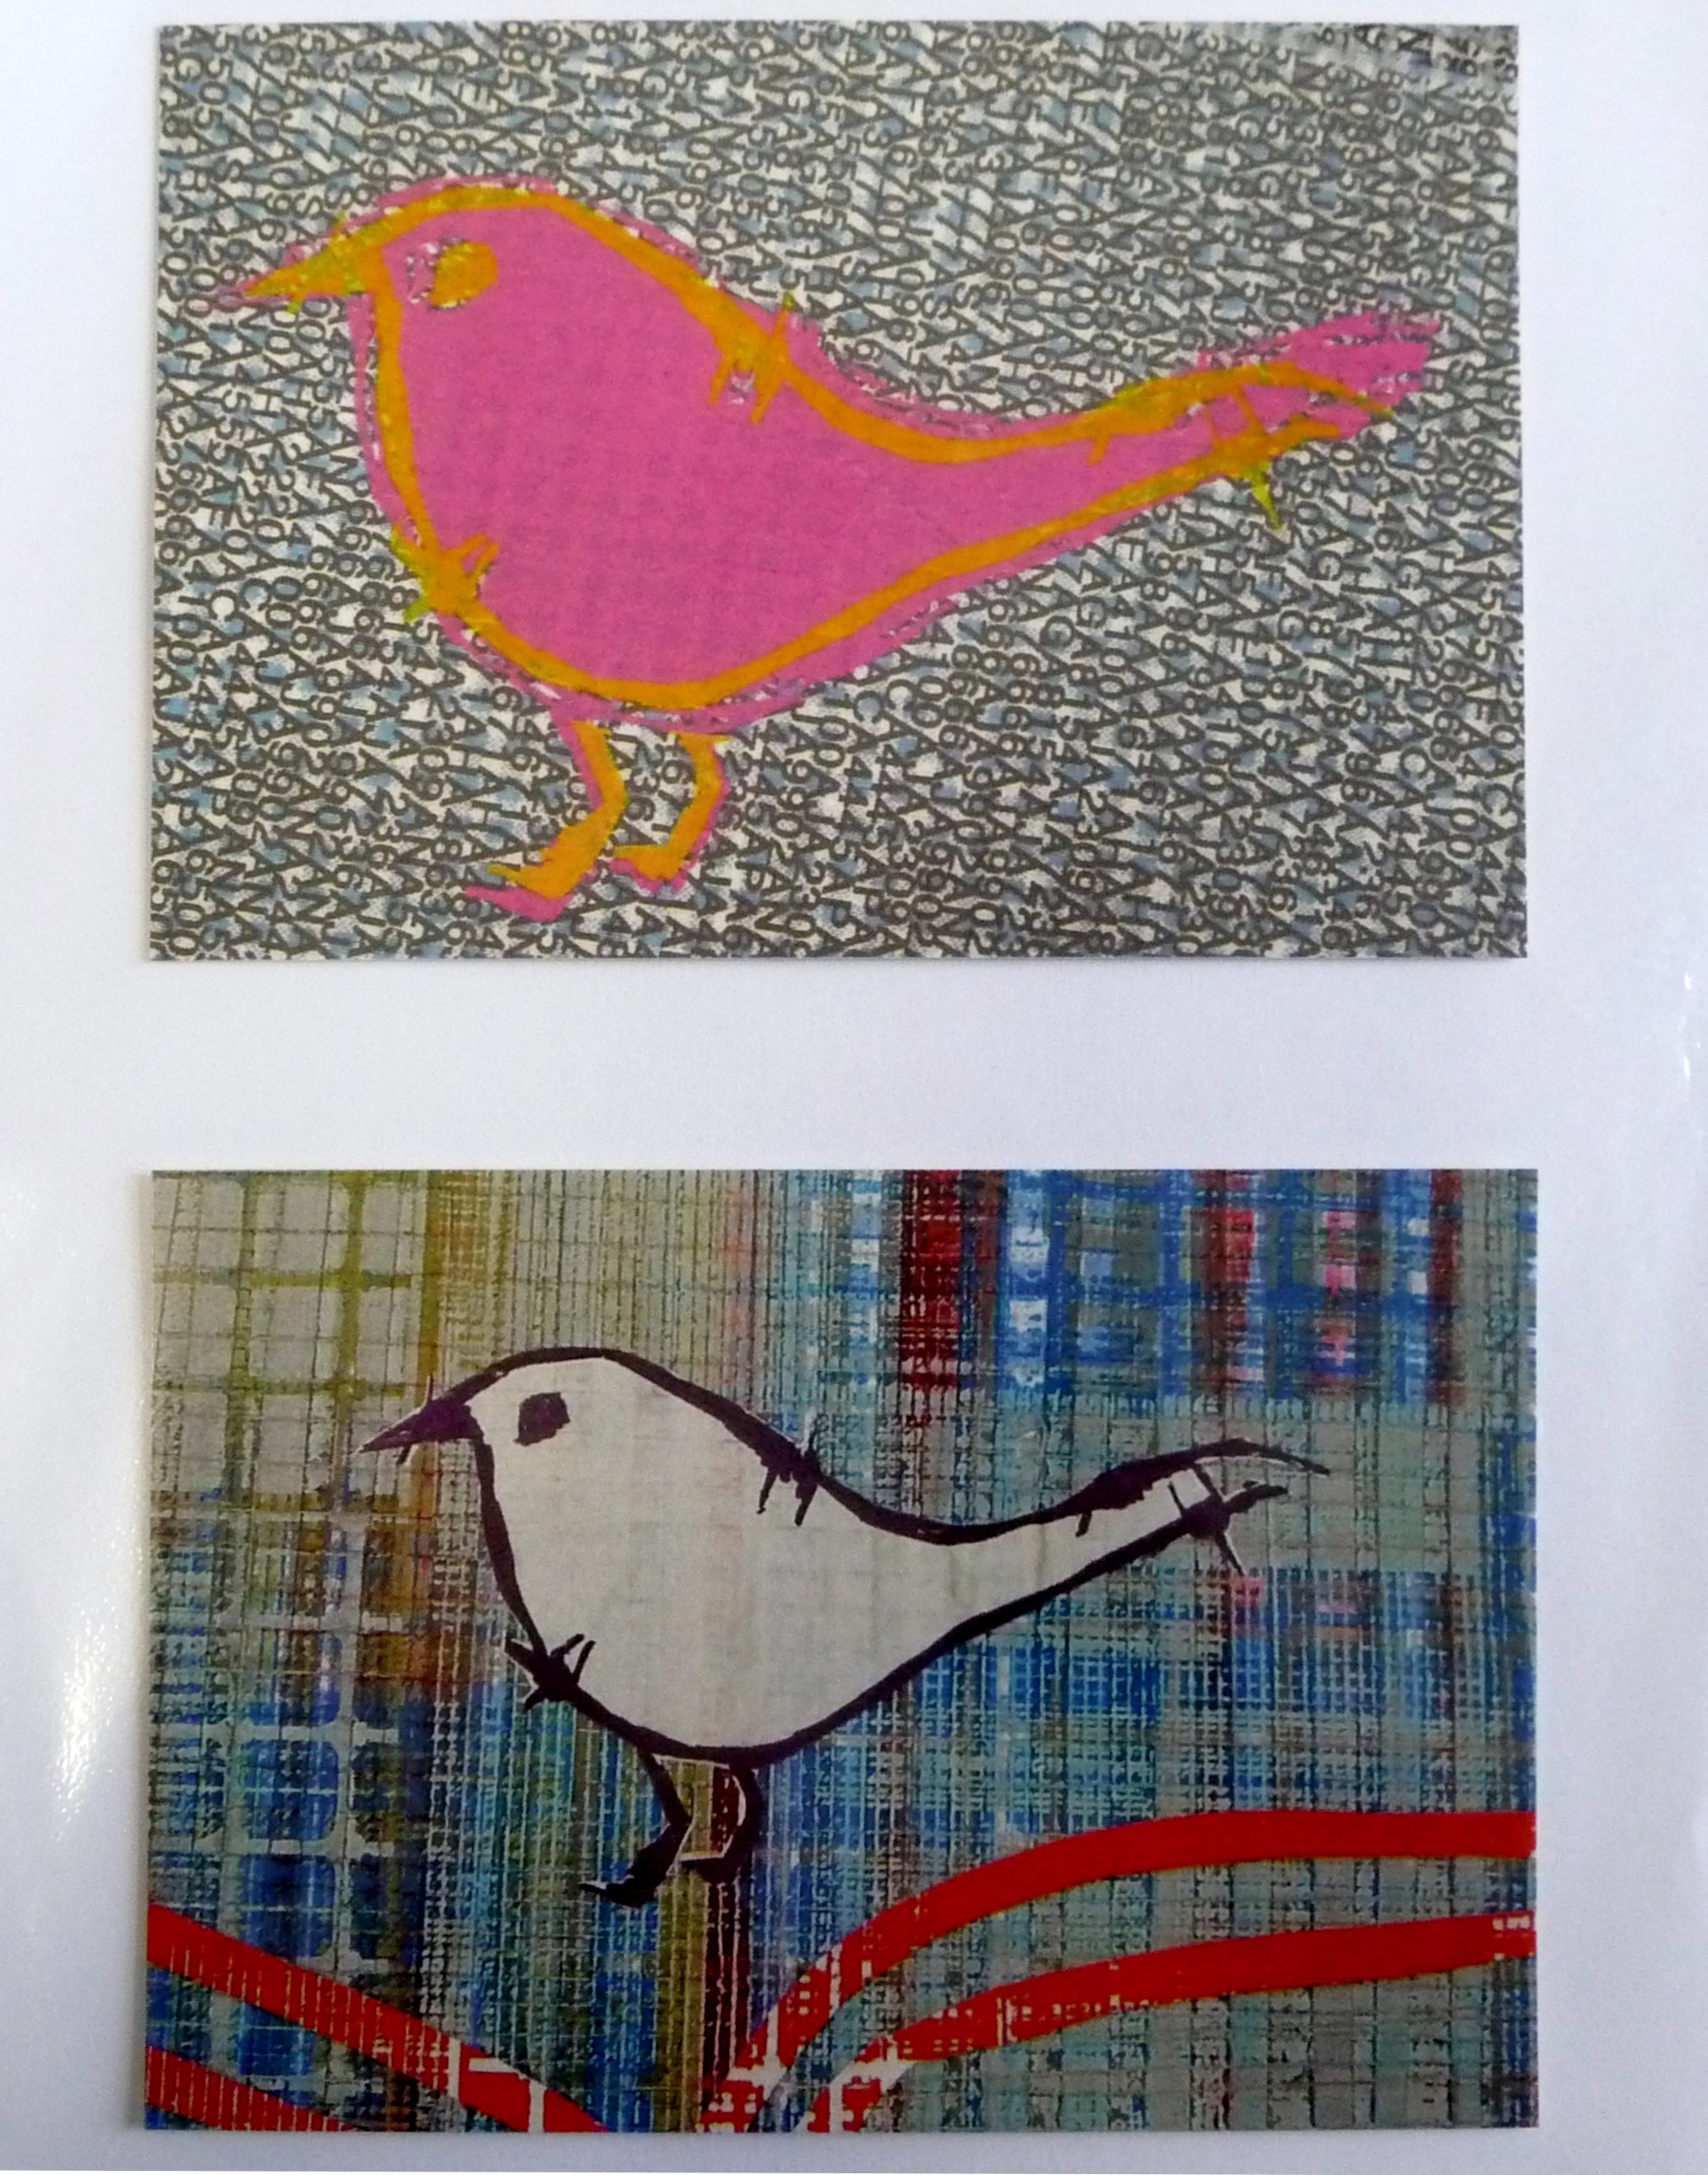 bird image screen printed on textile by Christine Toh